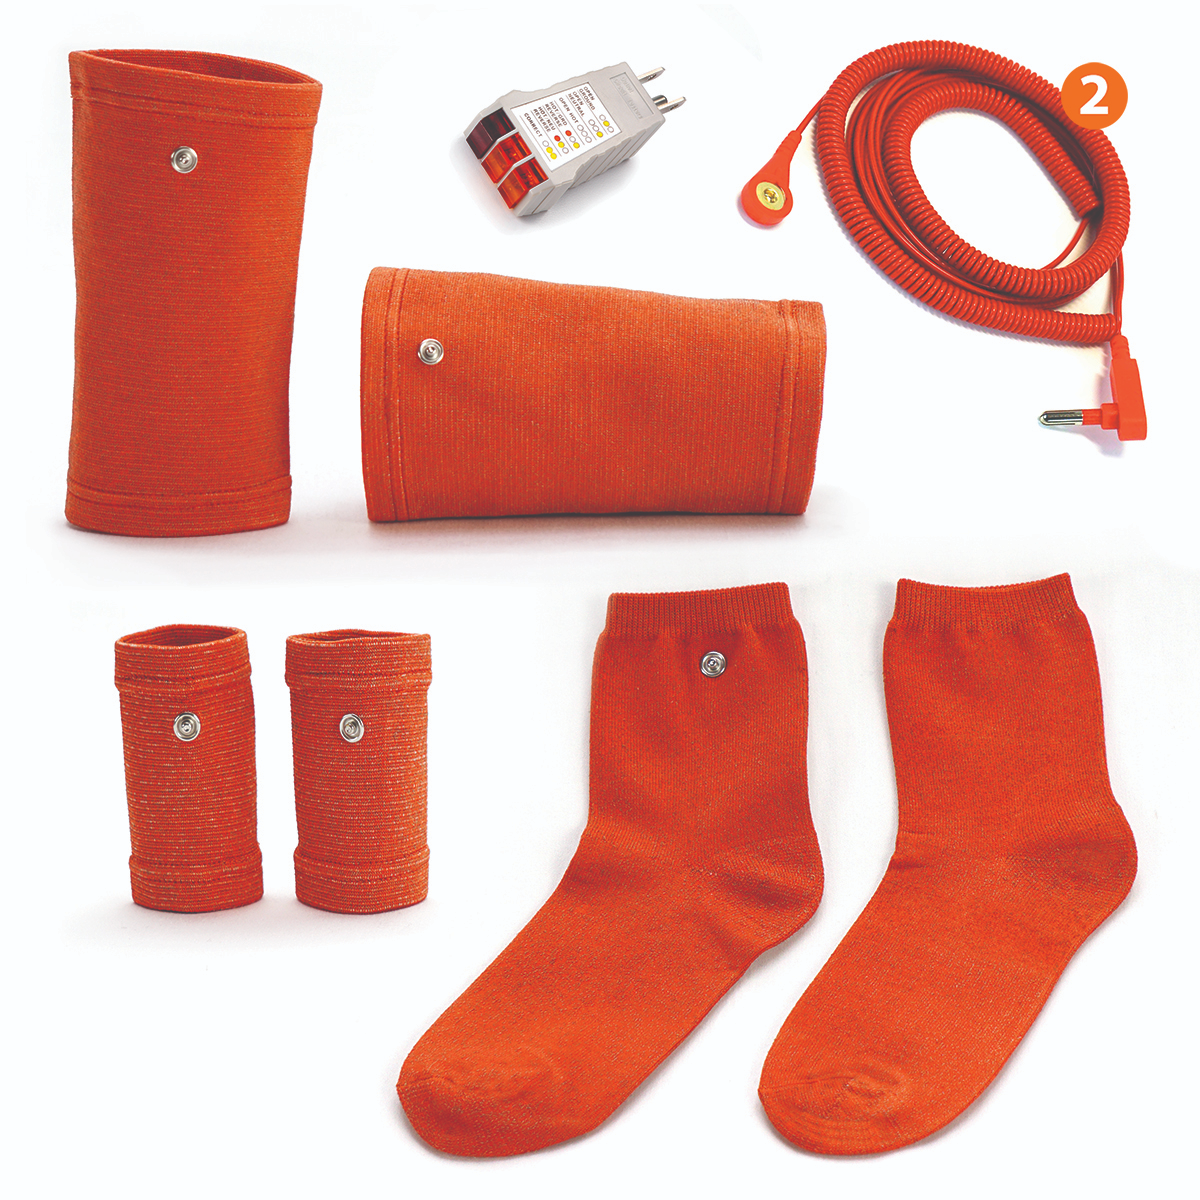 Earthing Wearables  make it easier than ever to achieve an ideal Grounding experience! Made with high quality conductive silver fabric, these socks, wrist bands and knee bands can be used anywhere you stretch, do yoga, sit, relax or sleep.